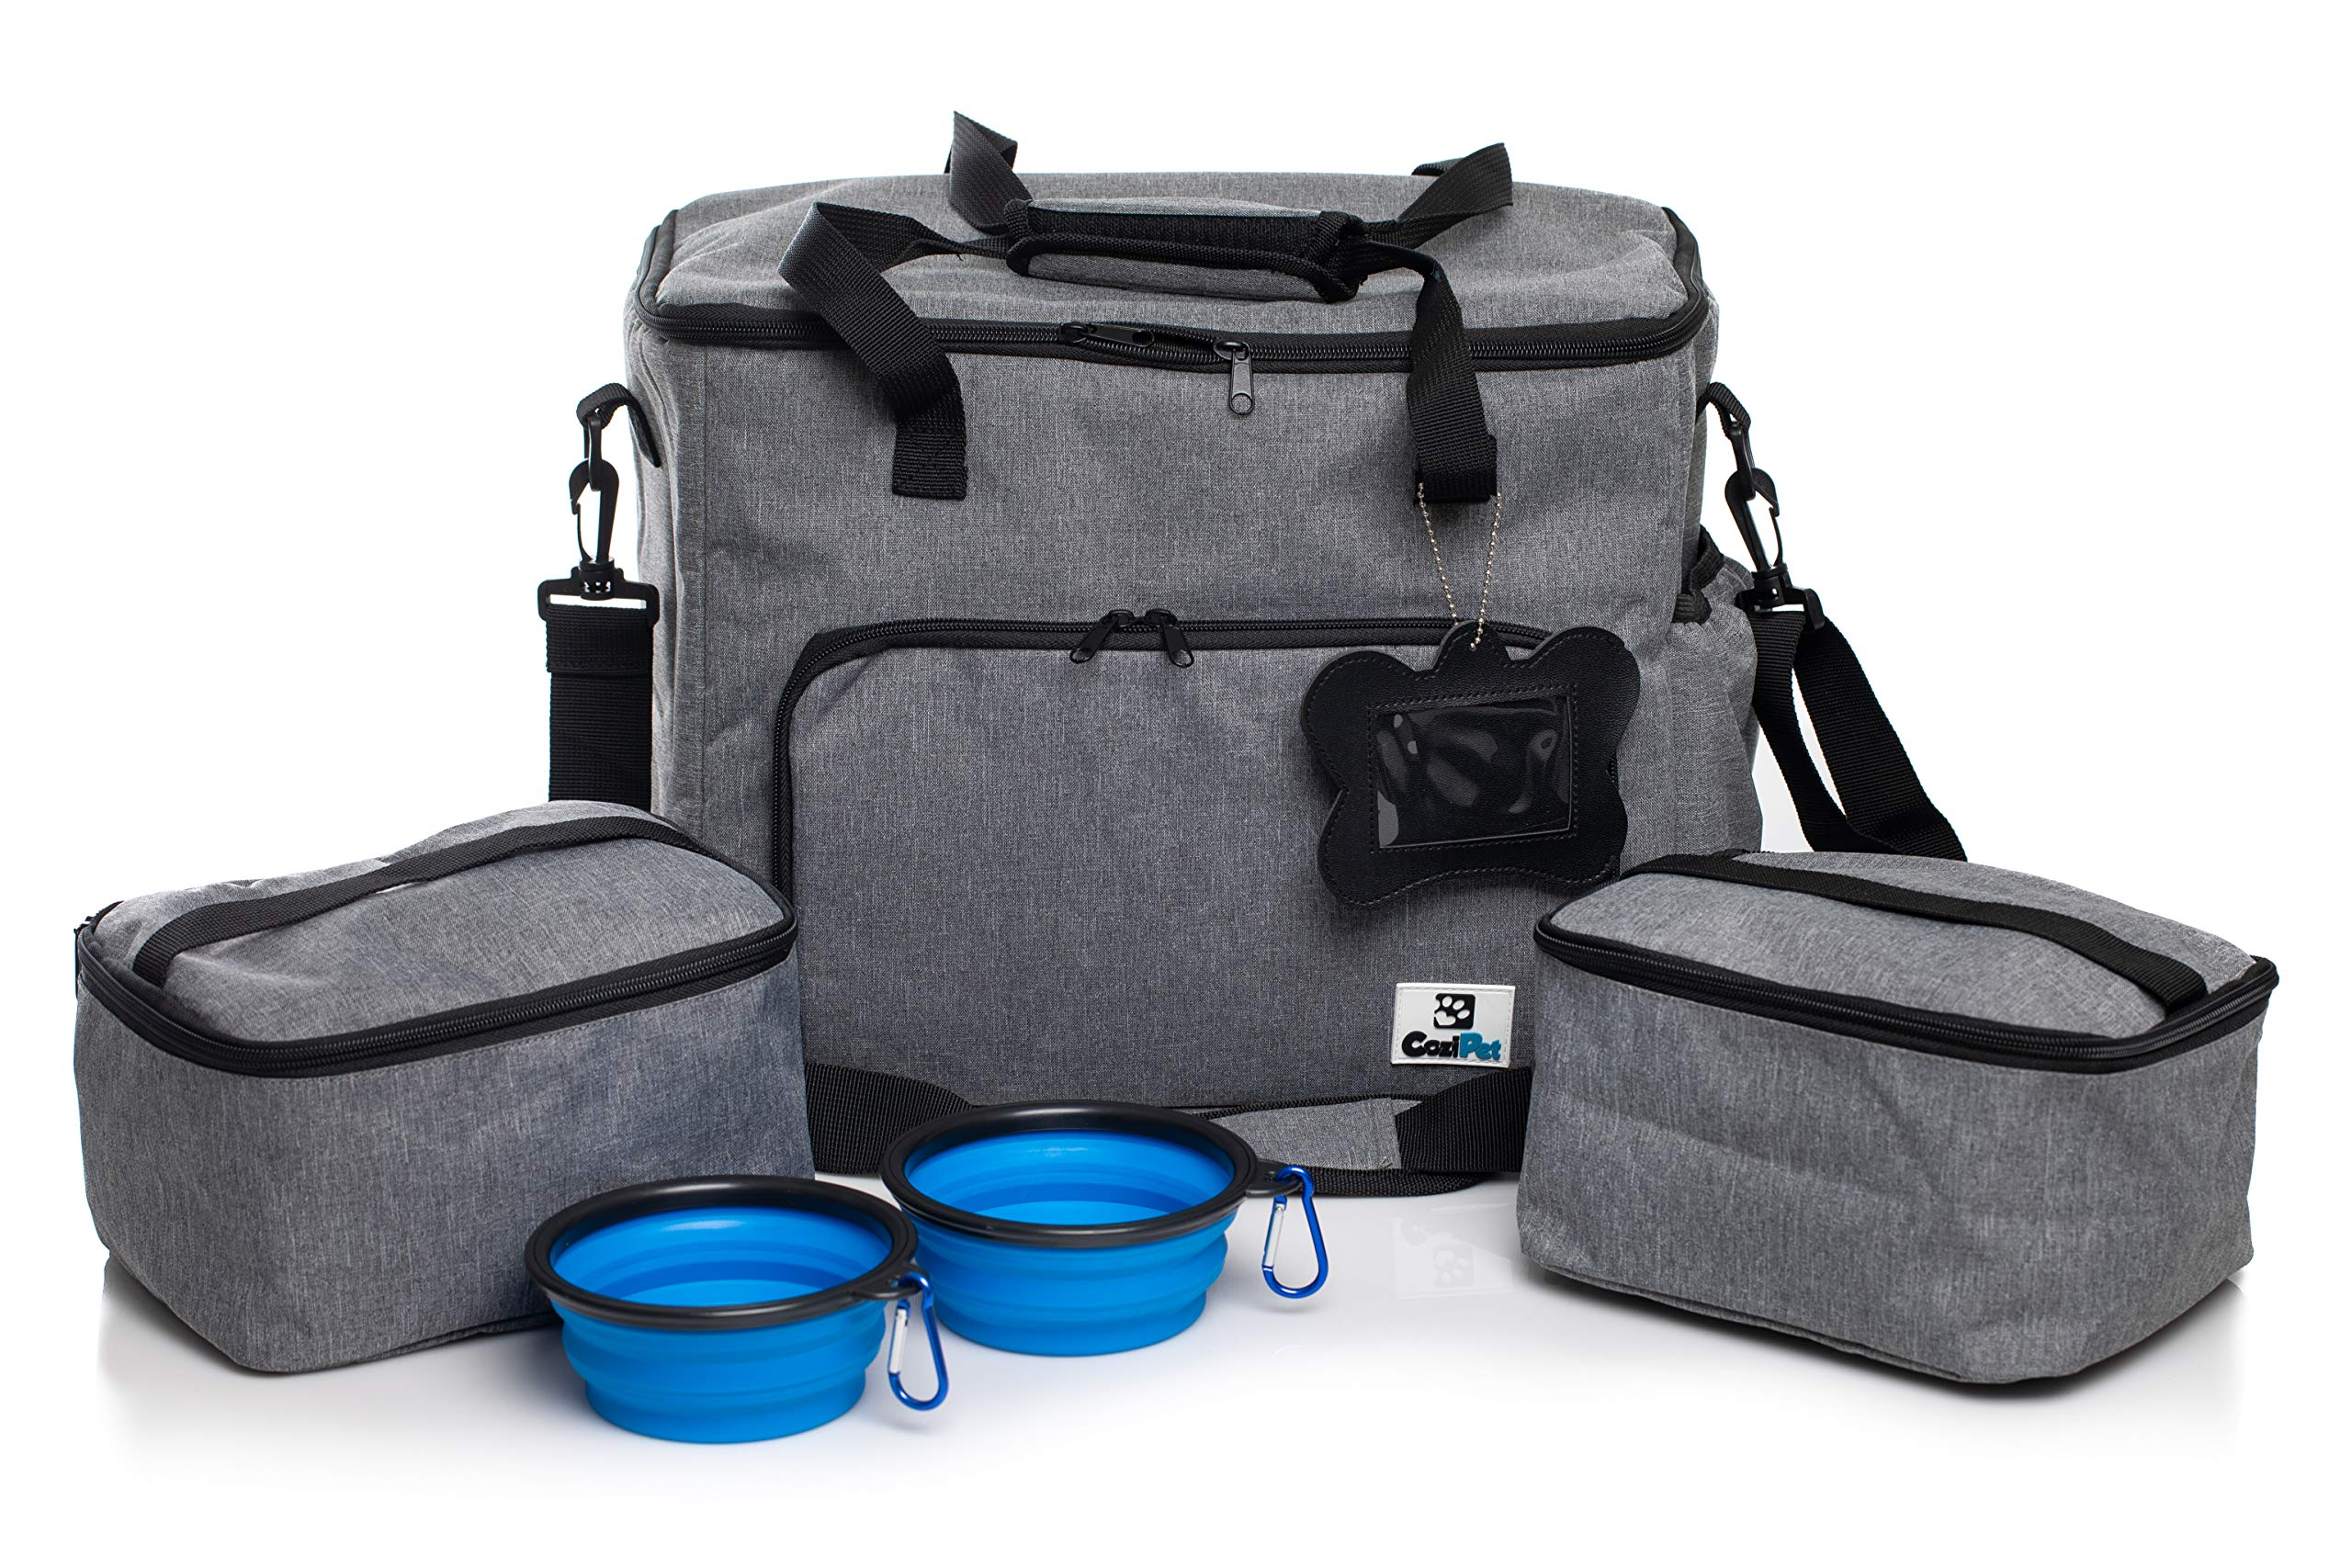 CoziPet Pet Travel Bag Tote for Dog or Cat with 2 Food Carriers and 2 Collapsible Bowls (Gray) by CoziPet